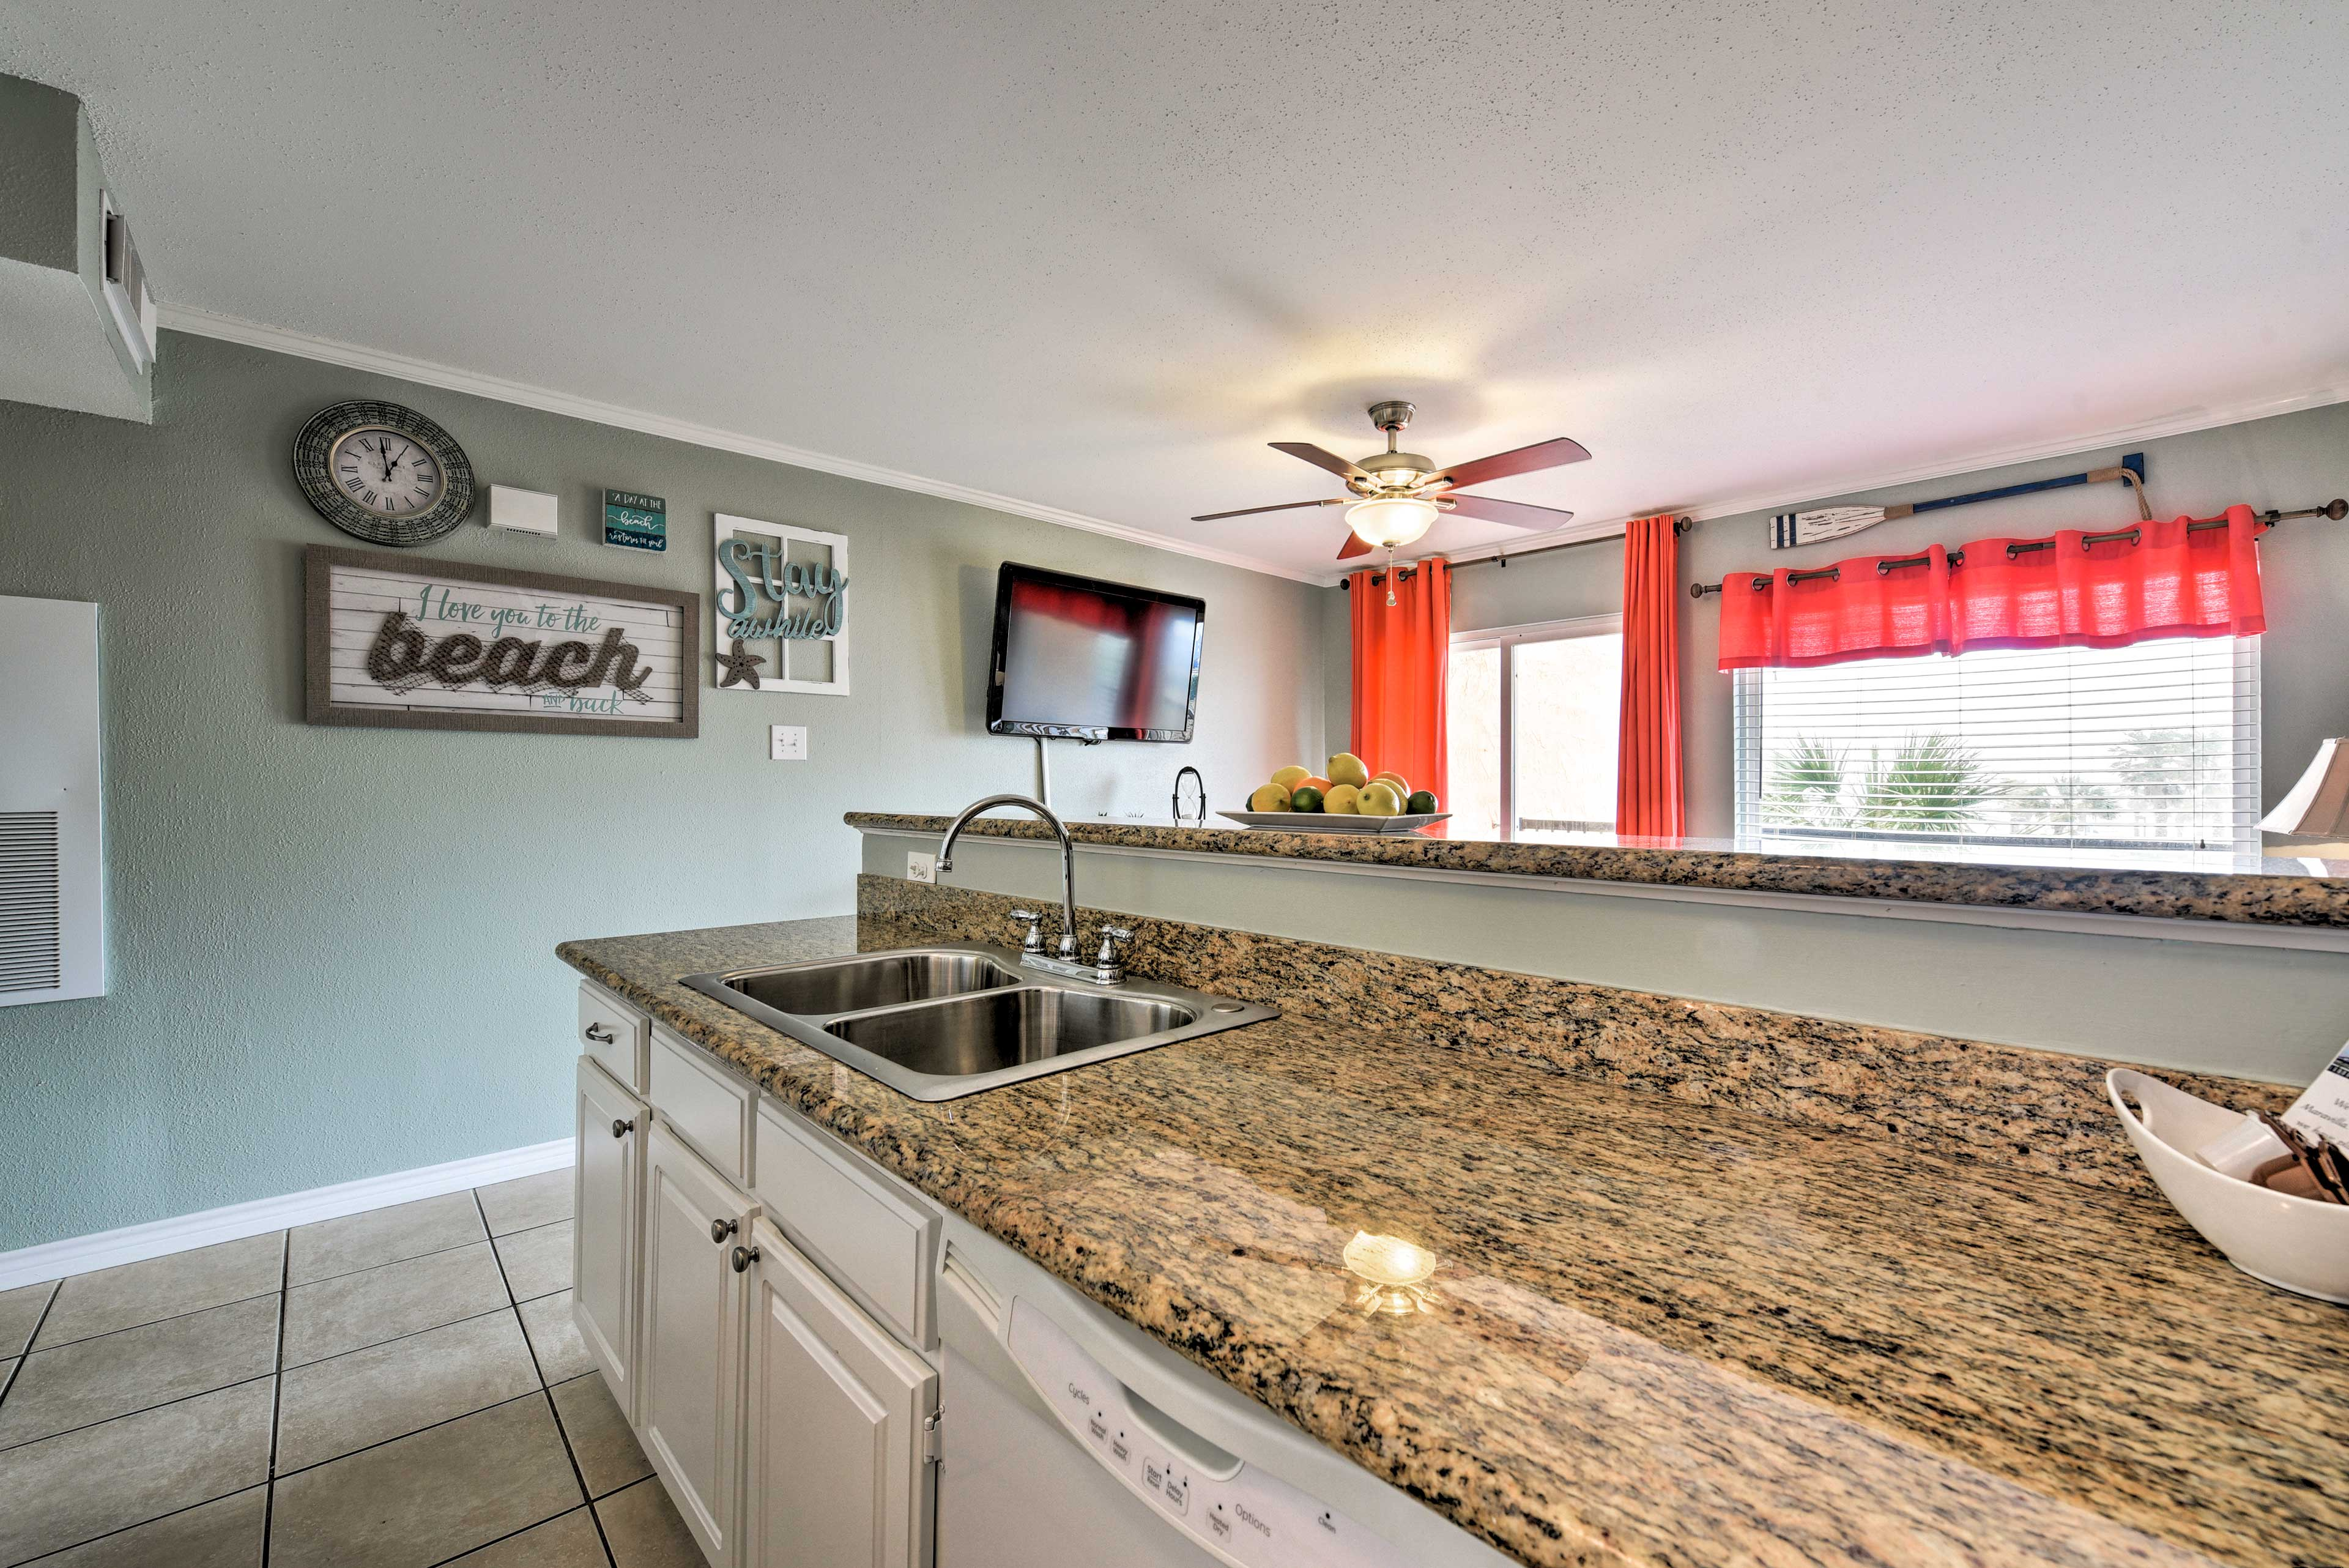 The granite countertops give the home an upscale feel.